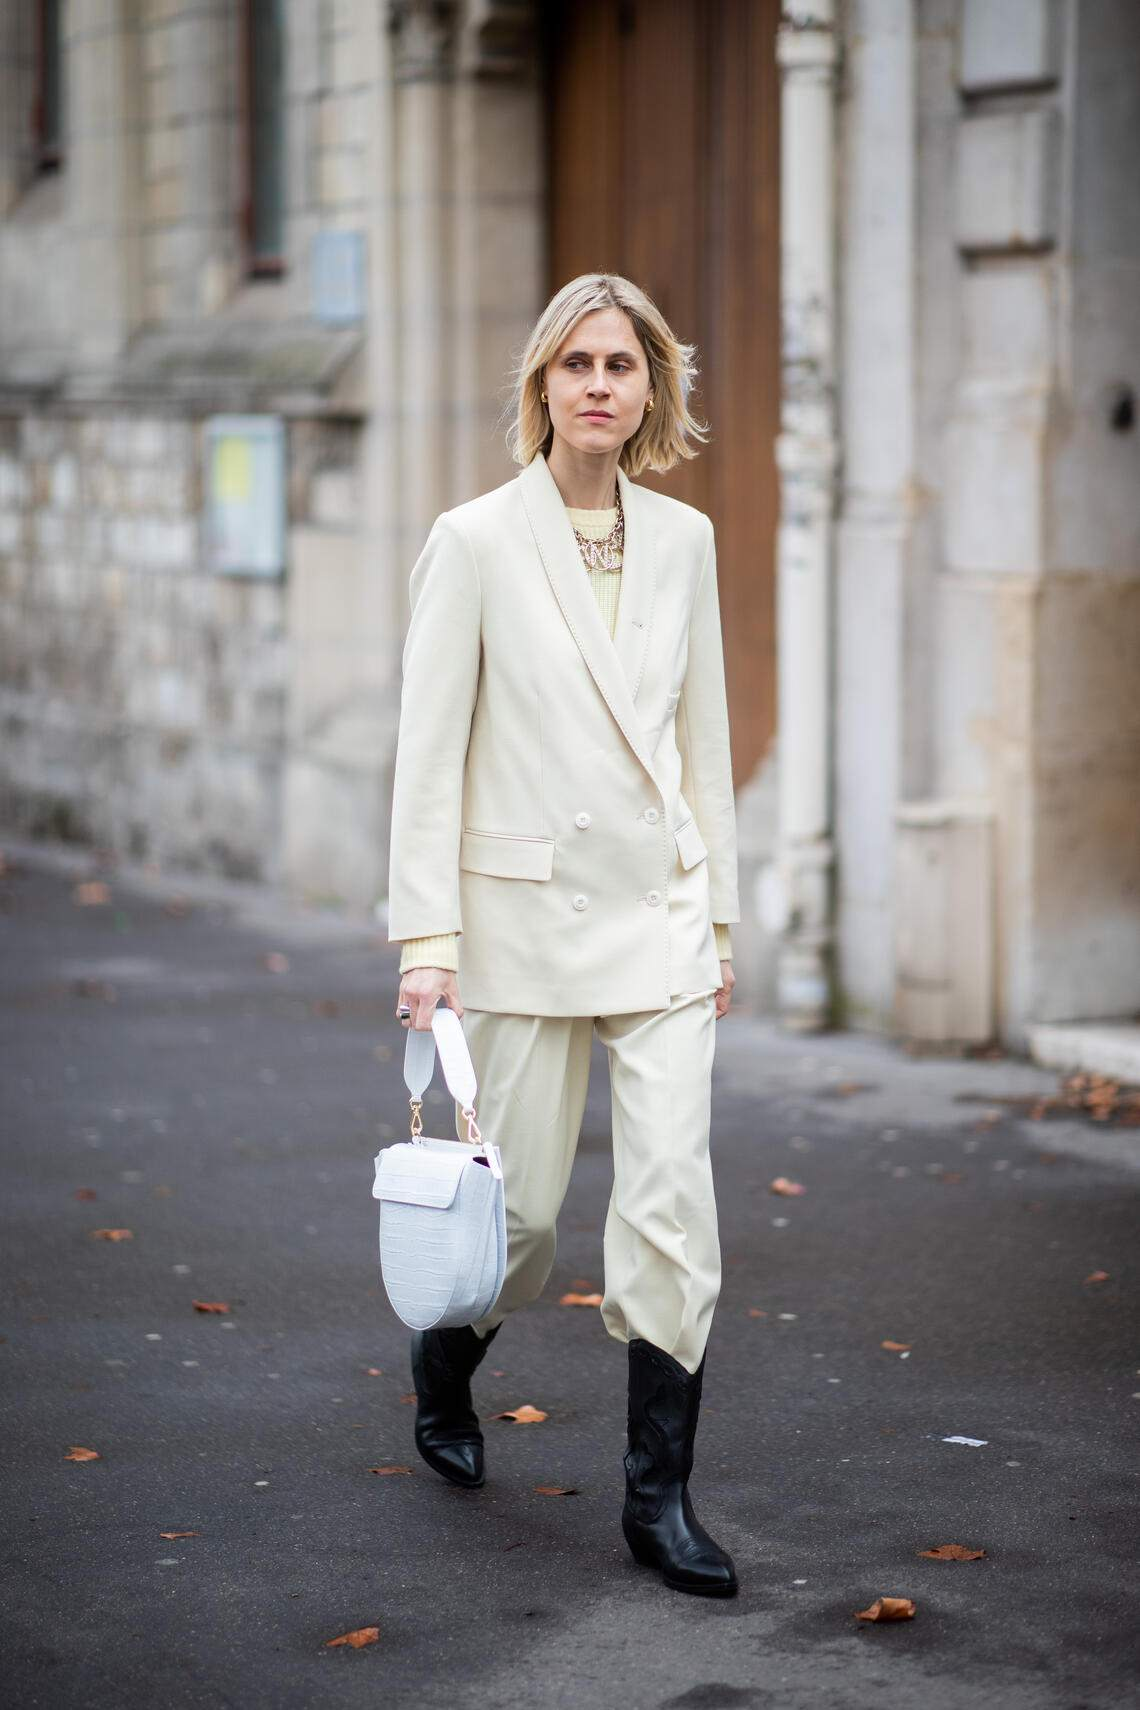 PARIS, FRANCE - MARCH 02: Linda Tol is seen wearing blazer jacket, pants, white Wangler bag, cowboy boots outside Elie Saab during Paris Fashion Week Womenswear Fall/Winter 2019/2020 on March 02, 2019 in Paris, France. (Photo by Christian Vierig/Getty Images)